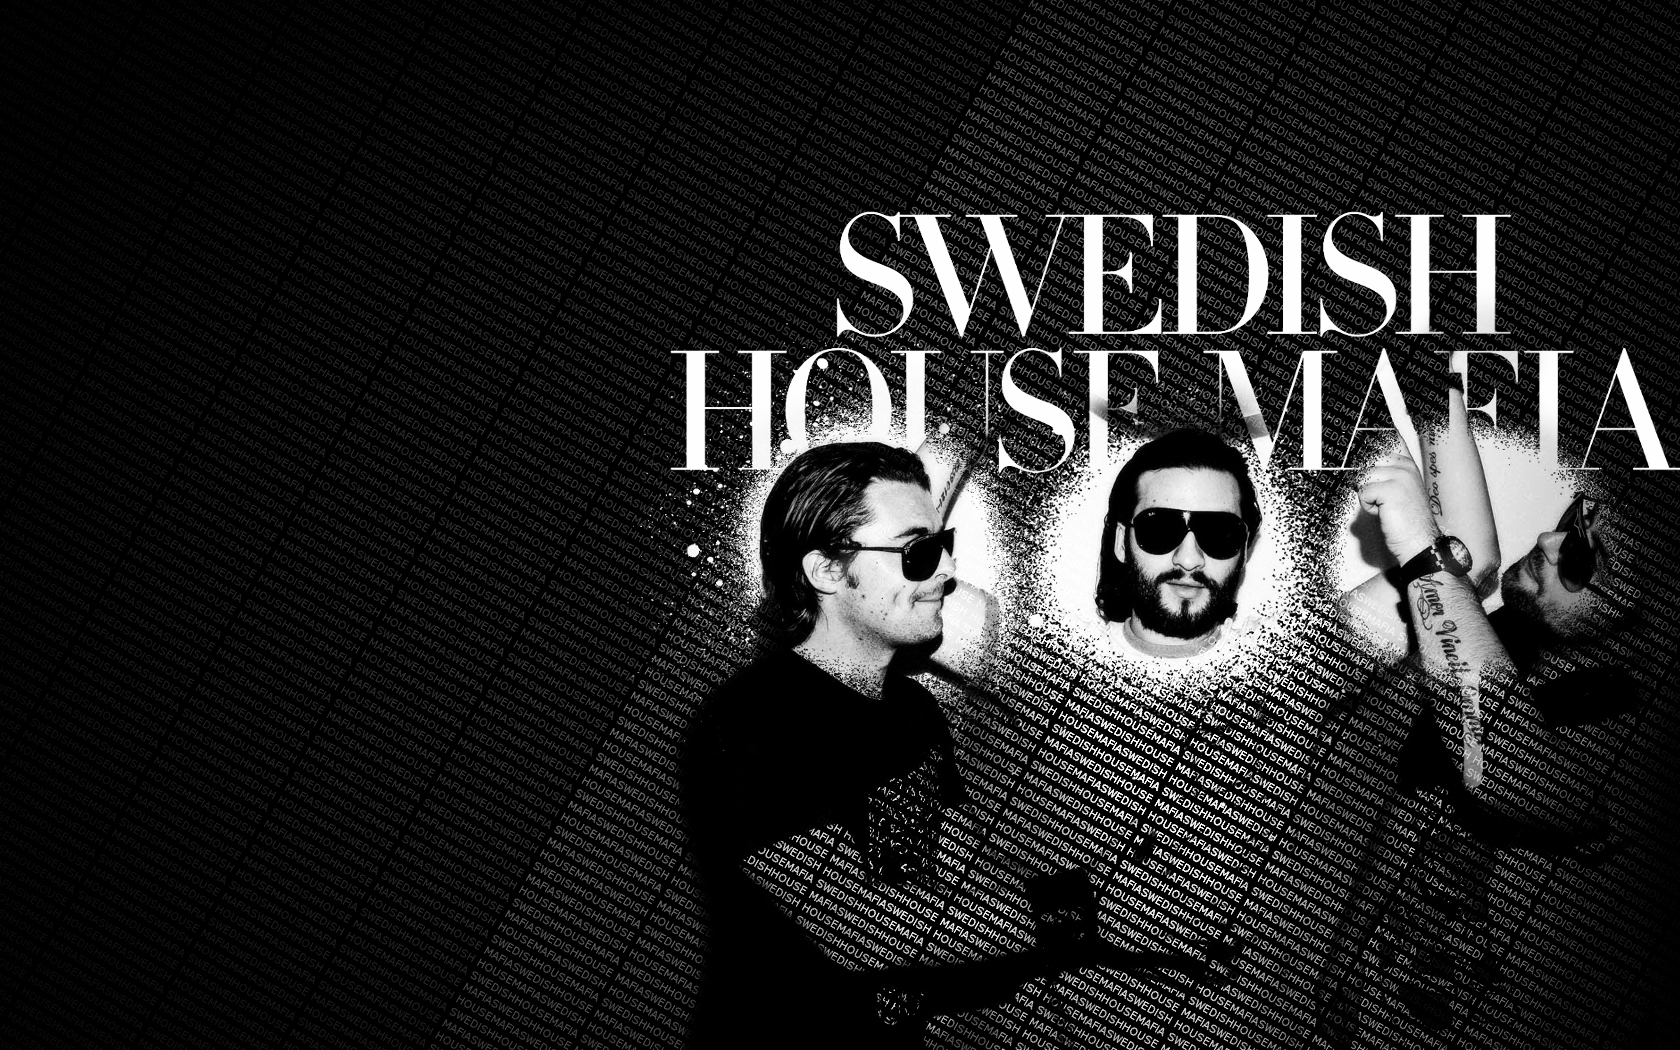 Swedish House Mafia Wallpaper 1680x1050